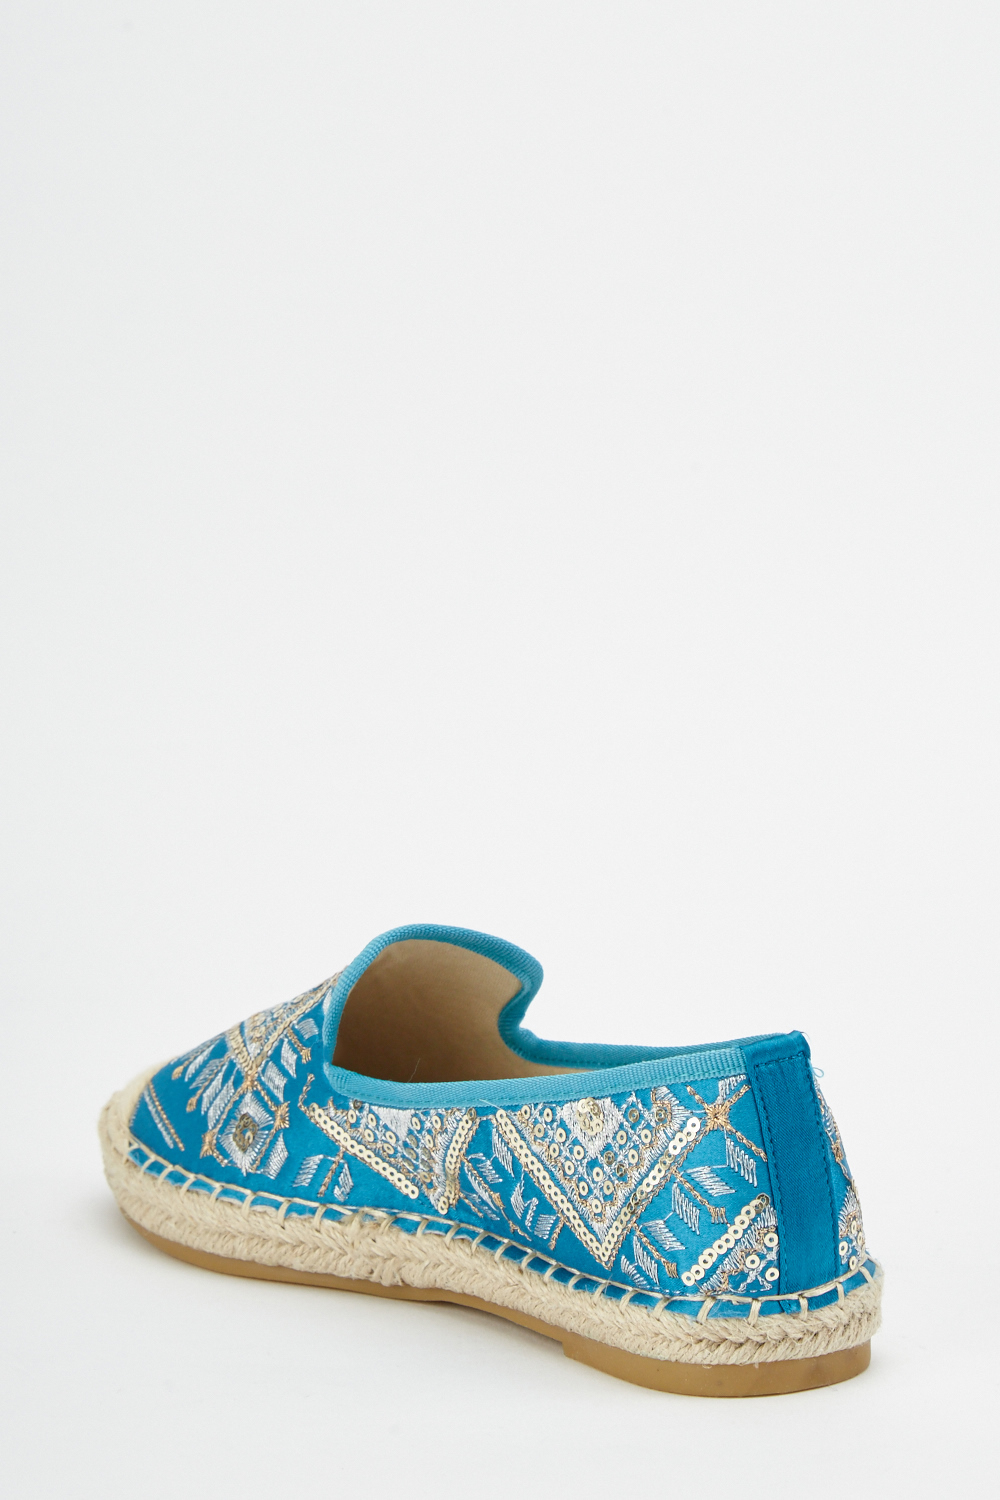 caa23231d Ethnic Embroidered Flat Espadrilles - 4 Colours - Just £5